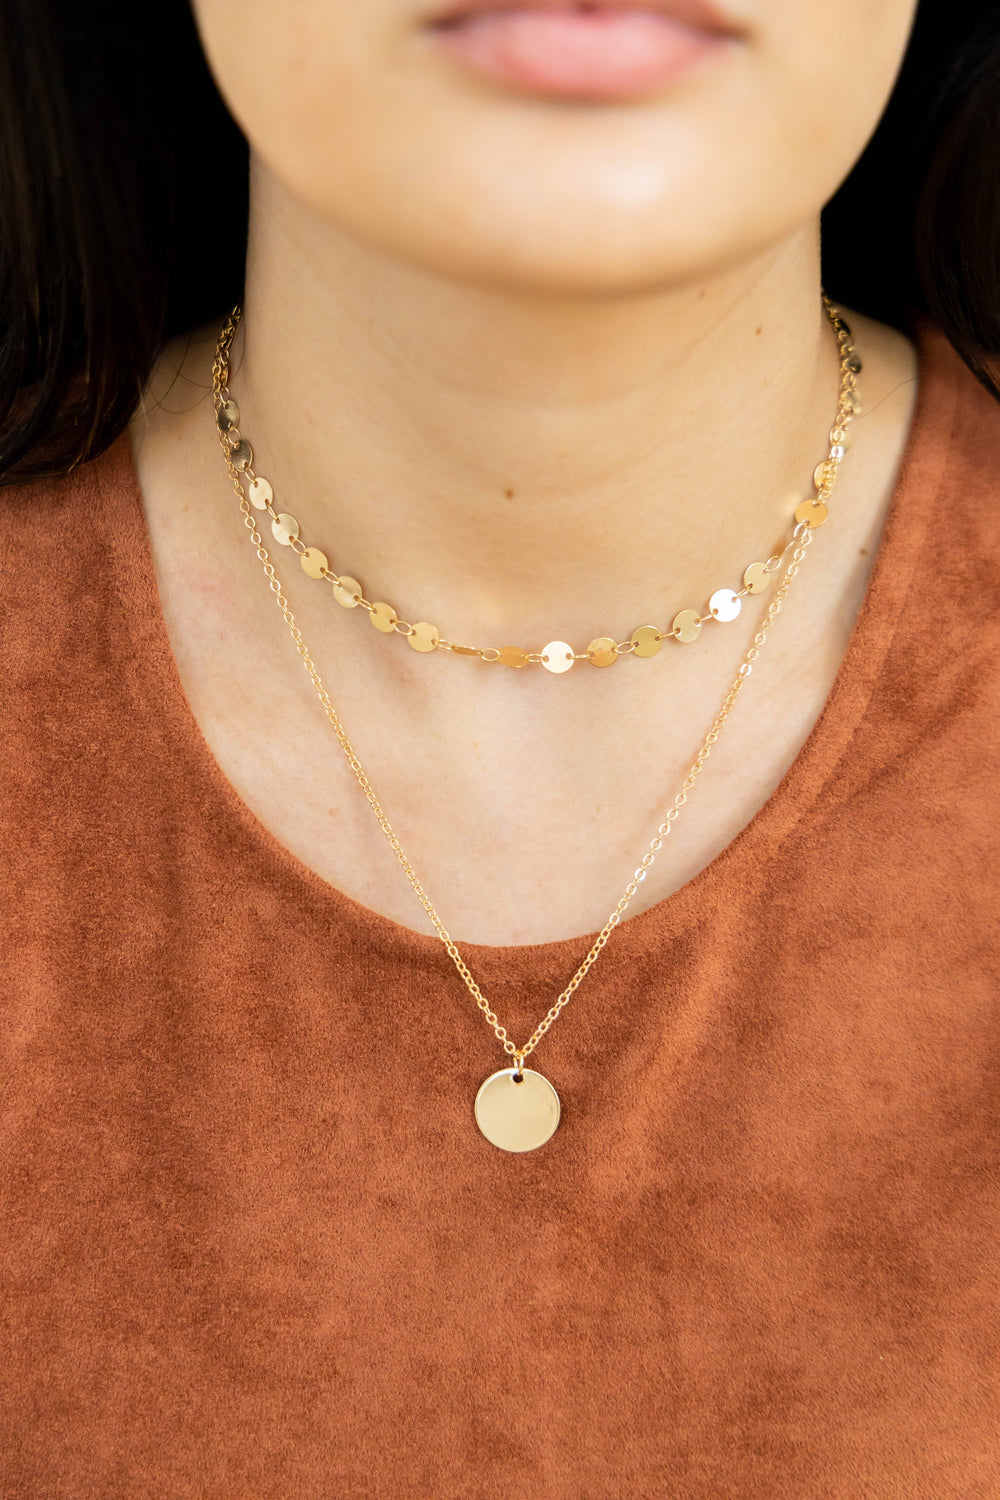 Gold layered necklace with choker on model